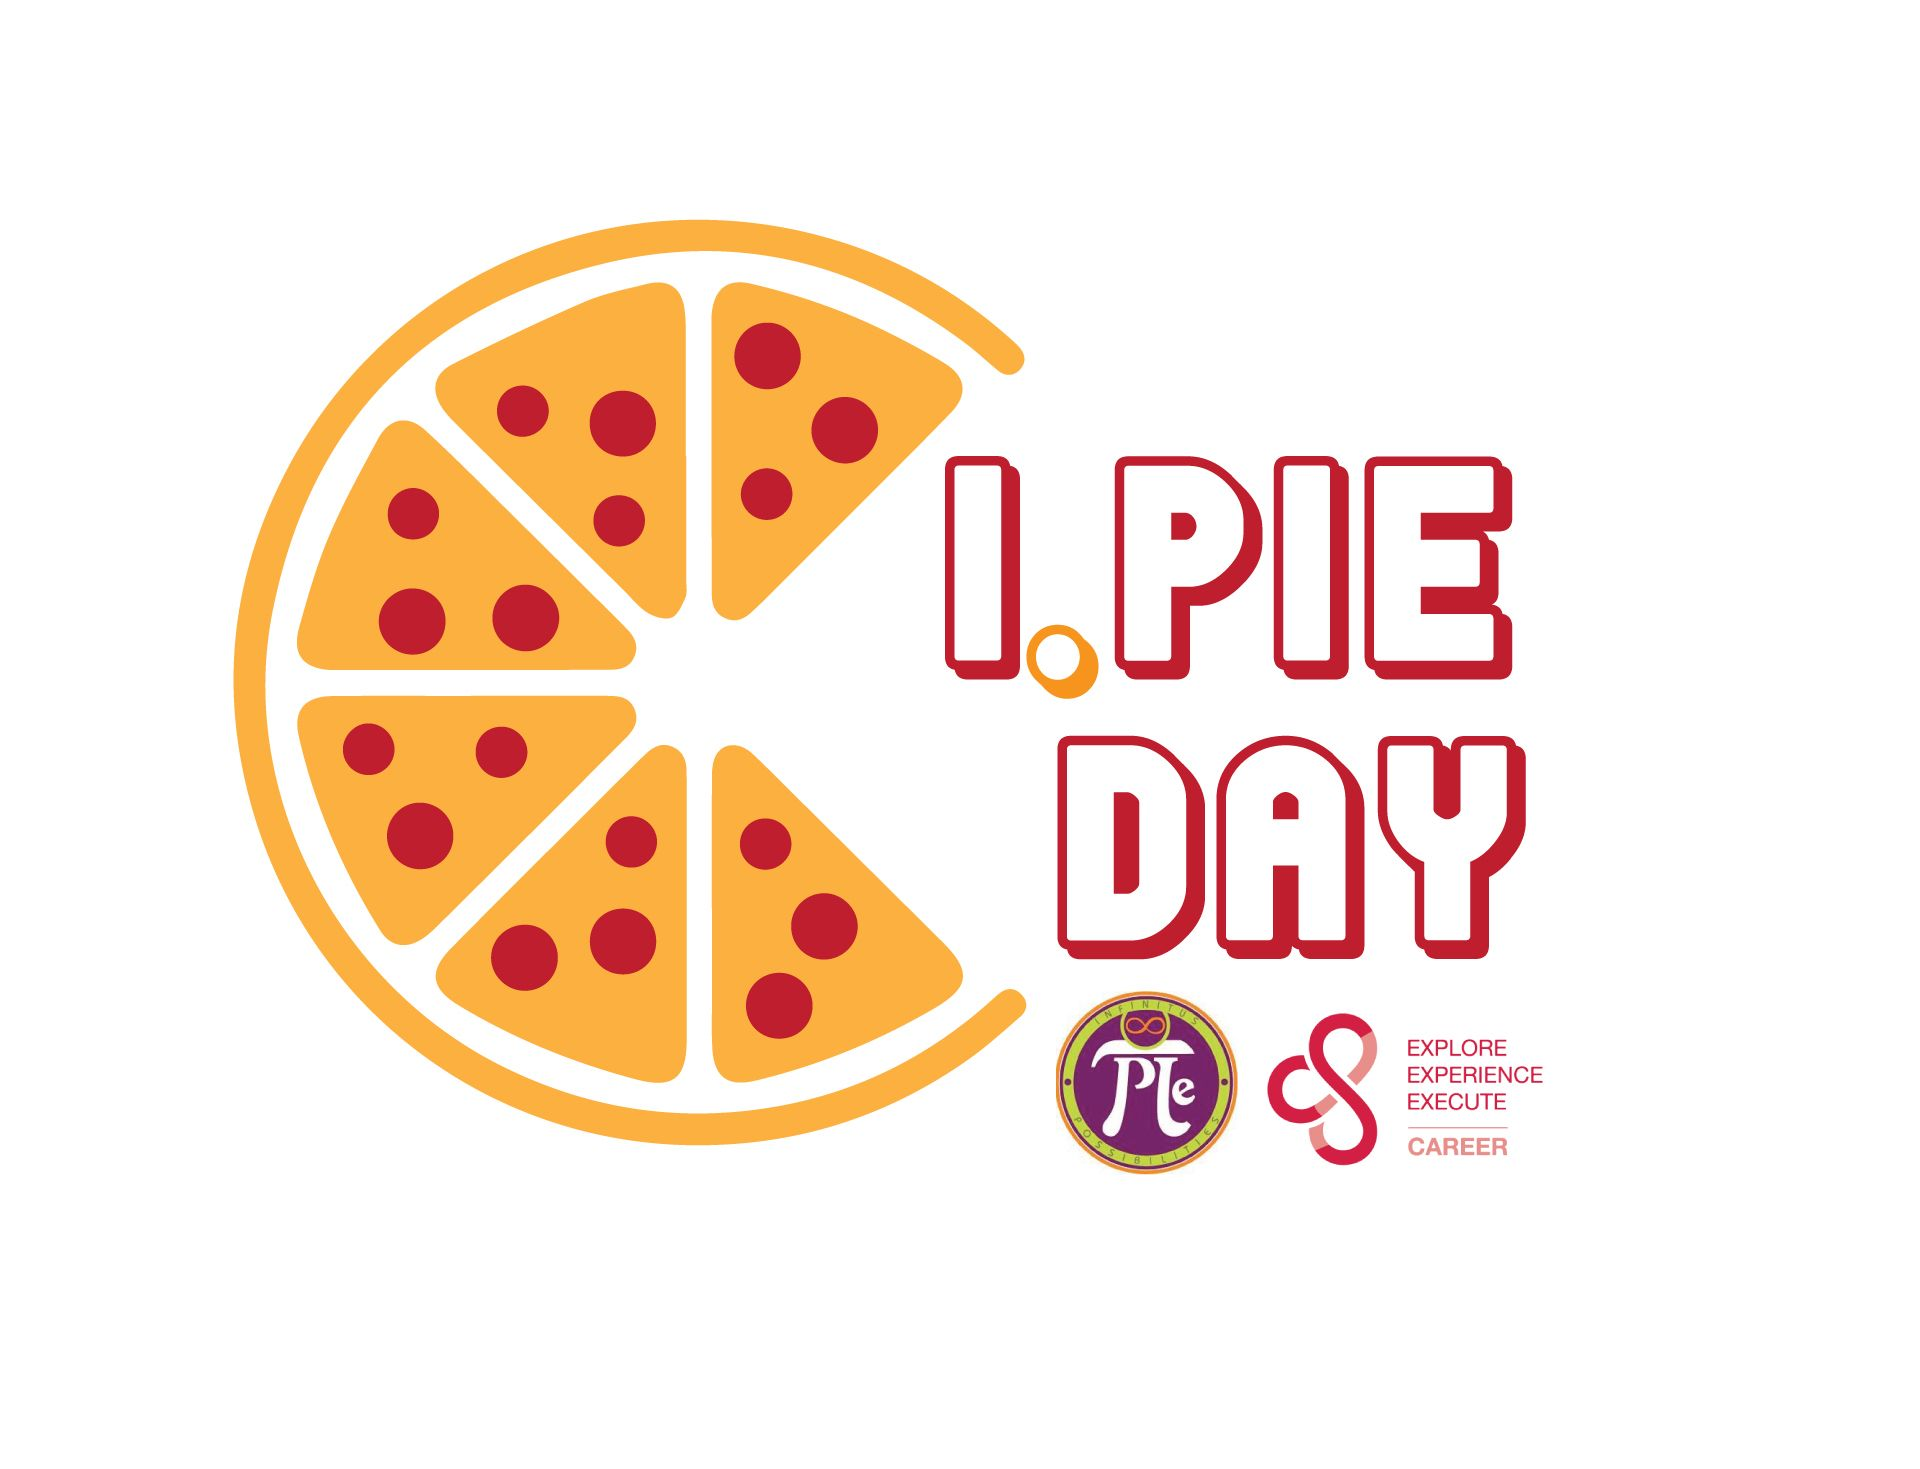 On Sept 21 Bring Your Ipie Pizza Receipt Dated September 21 To The Office Of Career Services In Tivoli 215 Located With Images Pizza Receipt Career Bring It On